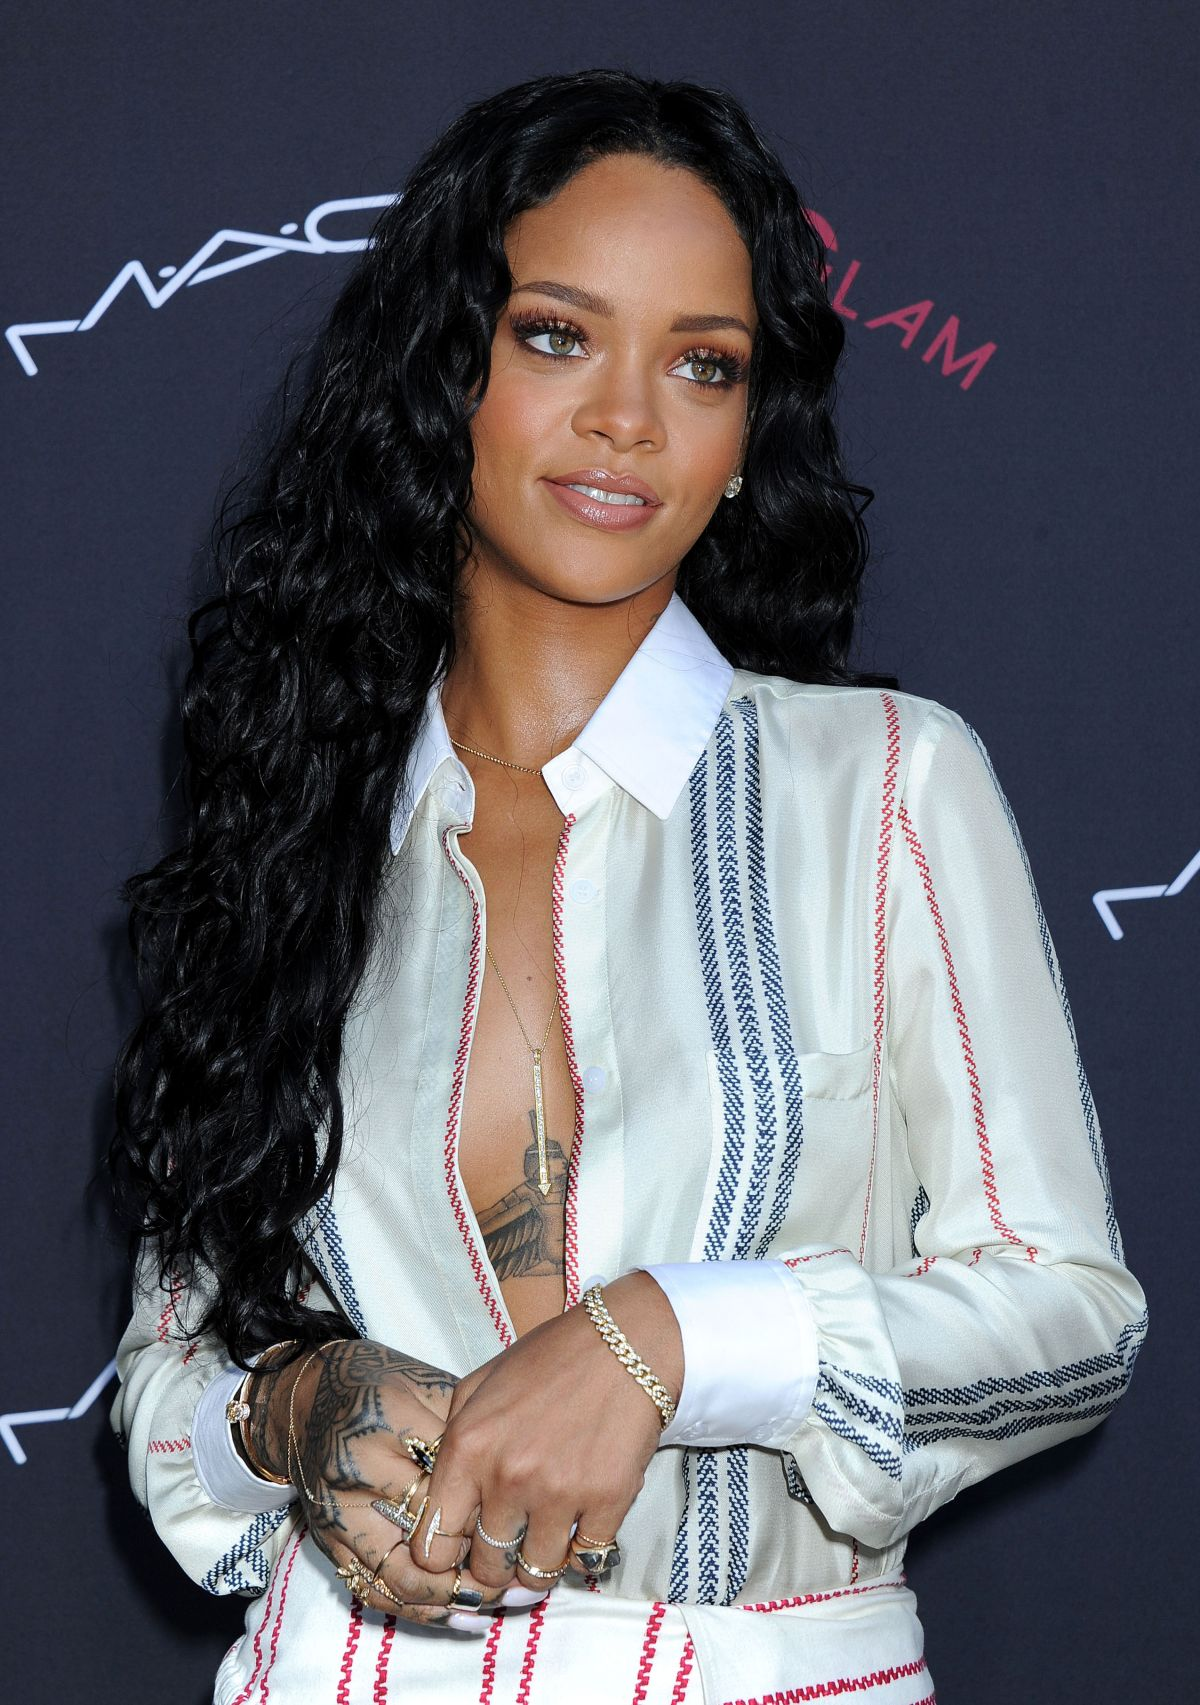 RIHANNA at 2014 Roc Nation Pre-Grammy Brunch in Beverly Hills